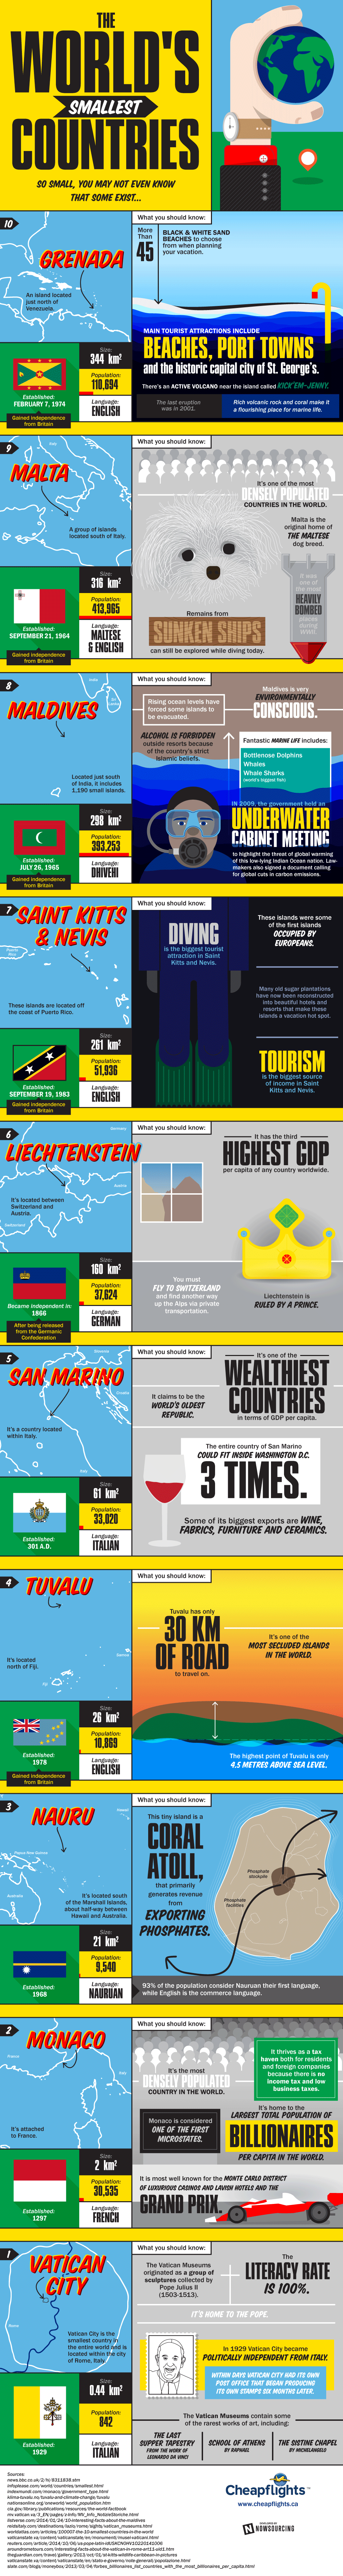 Worlds Smallest Countries #infographic